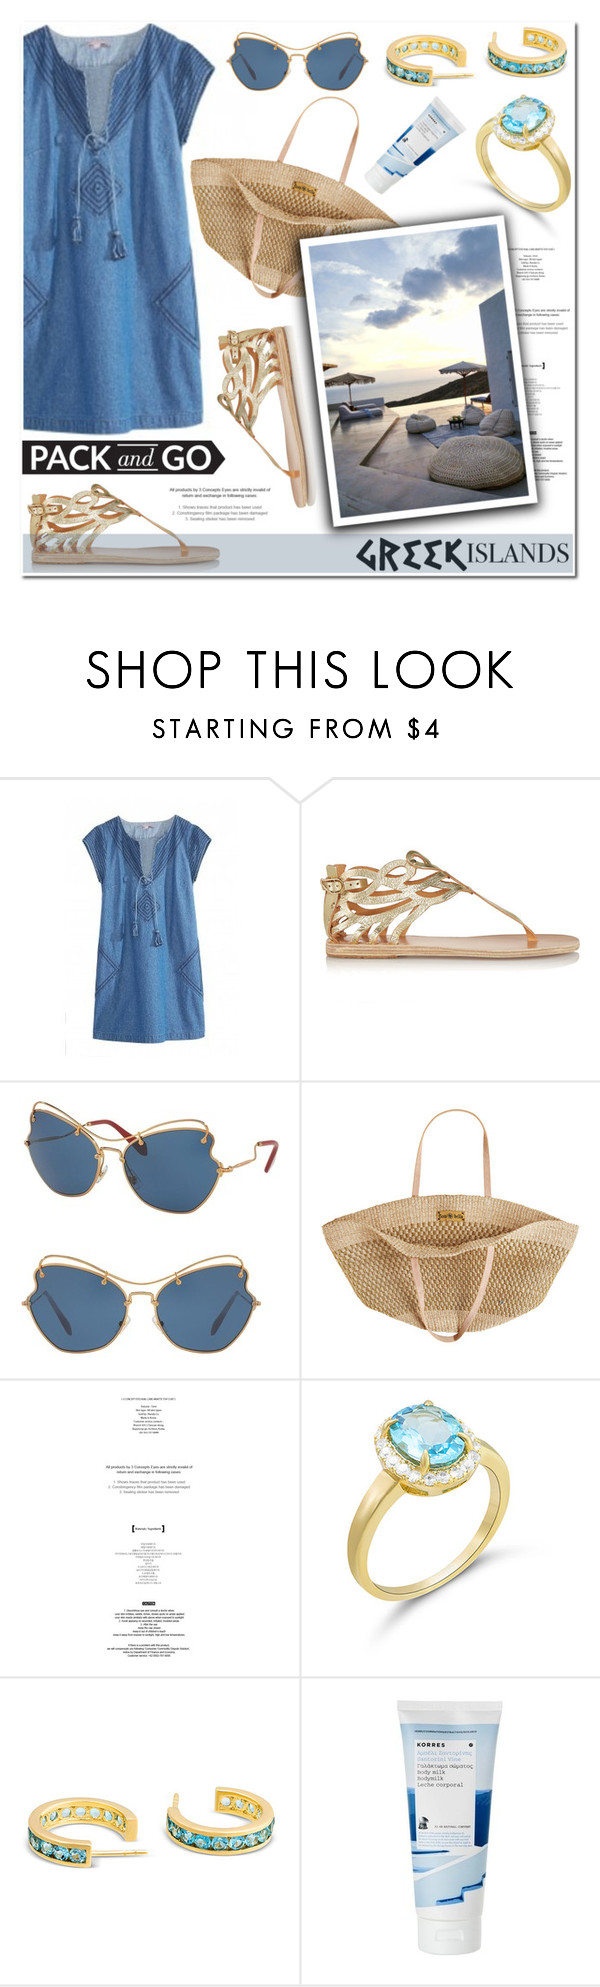 """Pack and Go: Greek Islands"" by blossom-jewels ❤ liked on Polyvore featuring Ancient Greek Sandals, Miu Miu, Flora Bella, Korres, contestentry, Packandgo, greekislands and Blossomjewels"